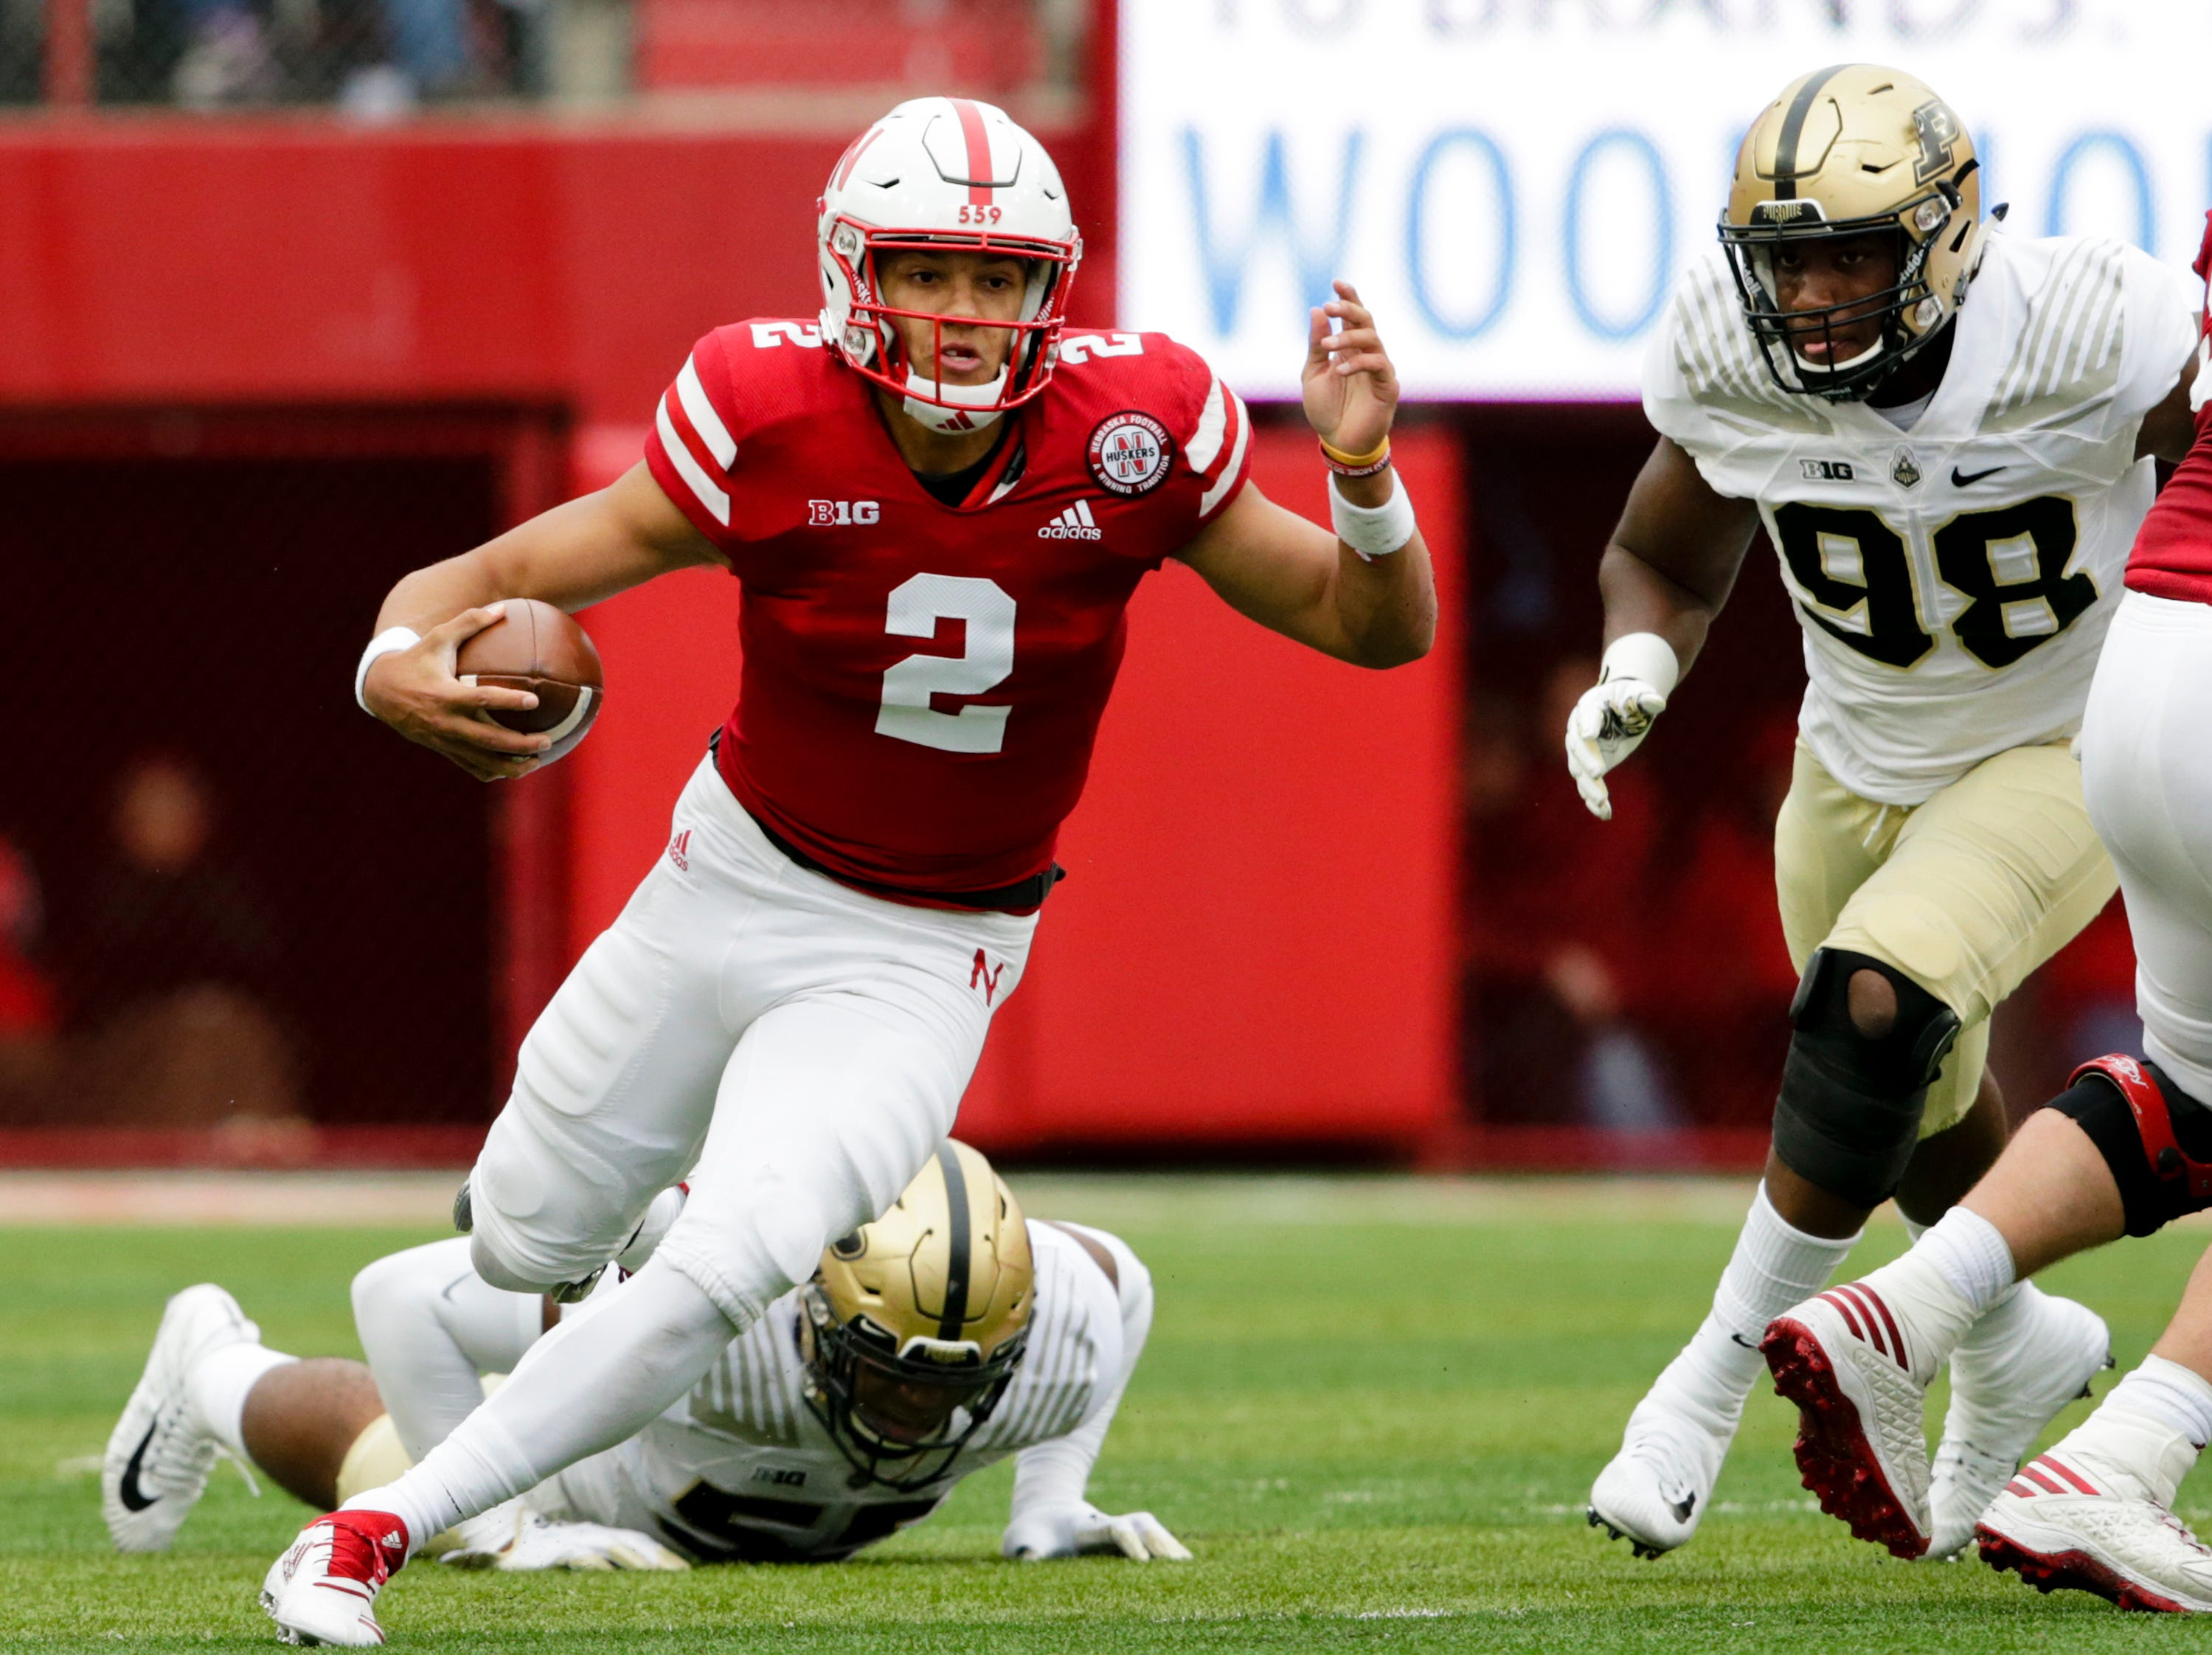 Nebraska quarterback Adrian Martinez (2) carries the ball away from Purdue linebacker Derrick Barnes (55) and defensive end Kai Higgins (98) during the first half of an NCAA college football game in Lincoln, Neb., Saturday, Sept. 29, 2018. (AP Photo/Nati Harnik)